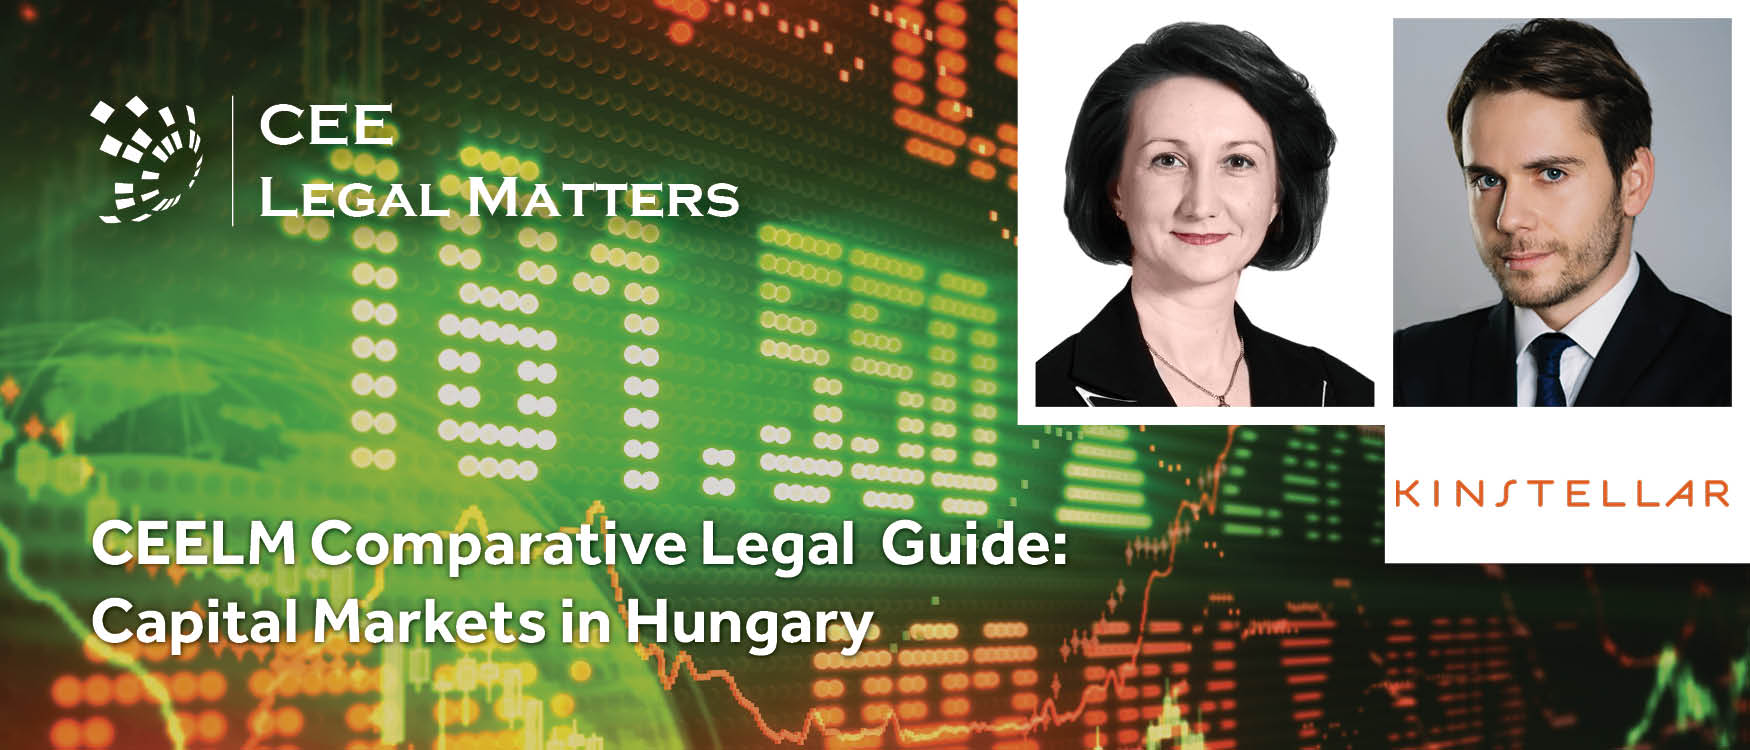 Capital Markets in Hungary